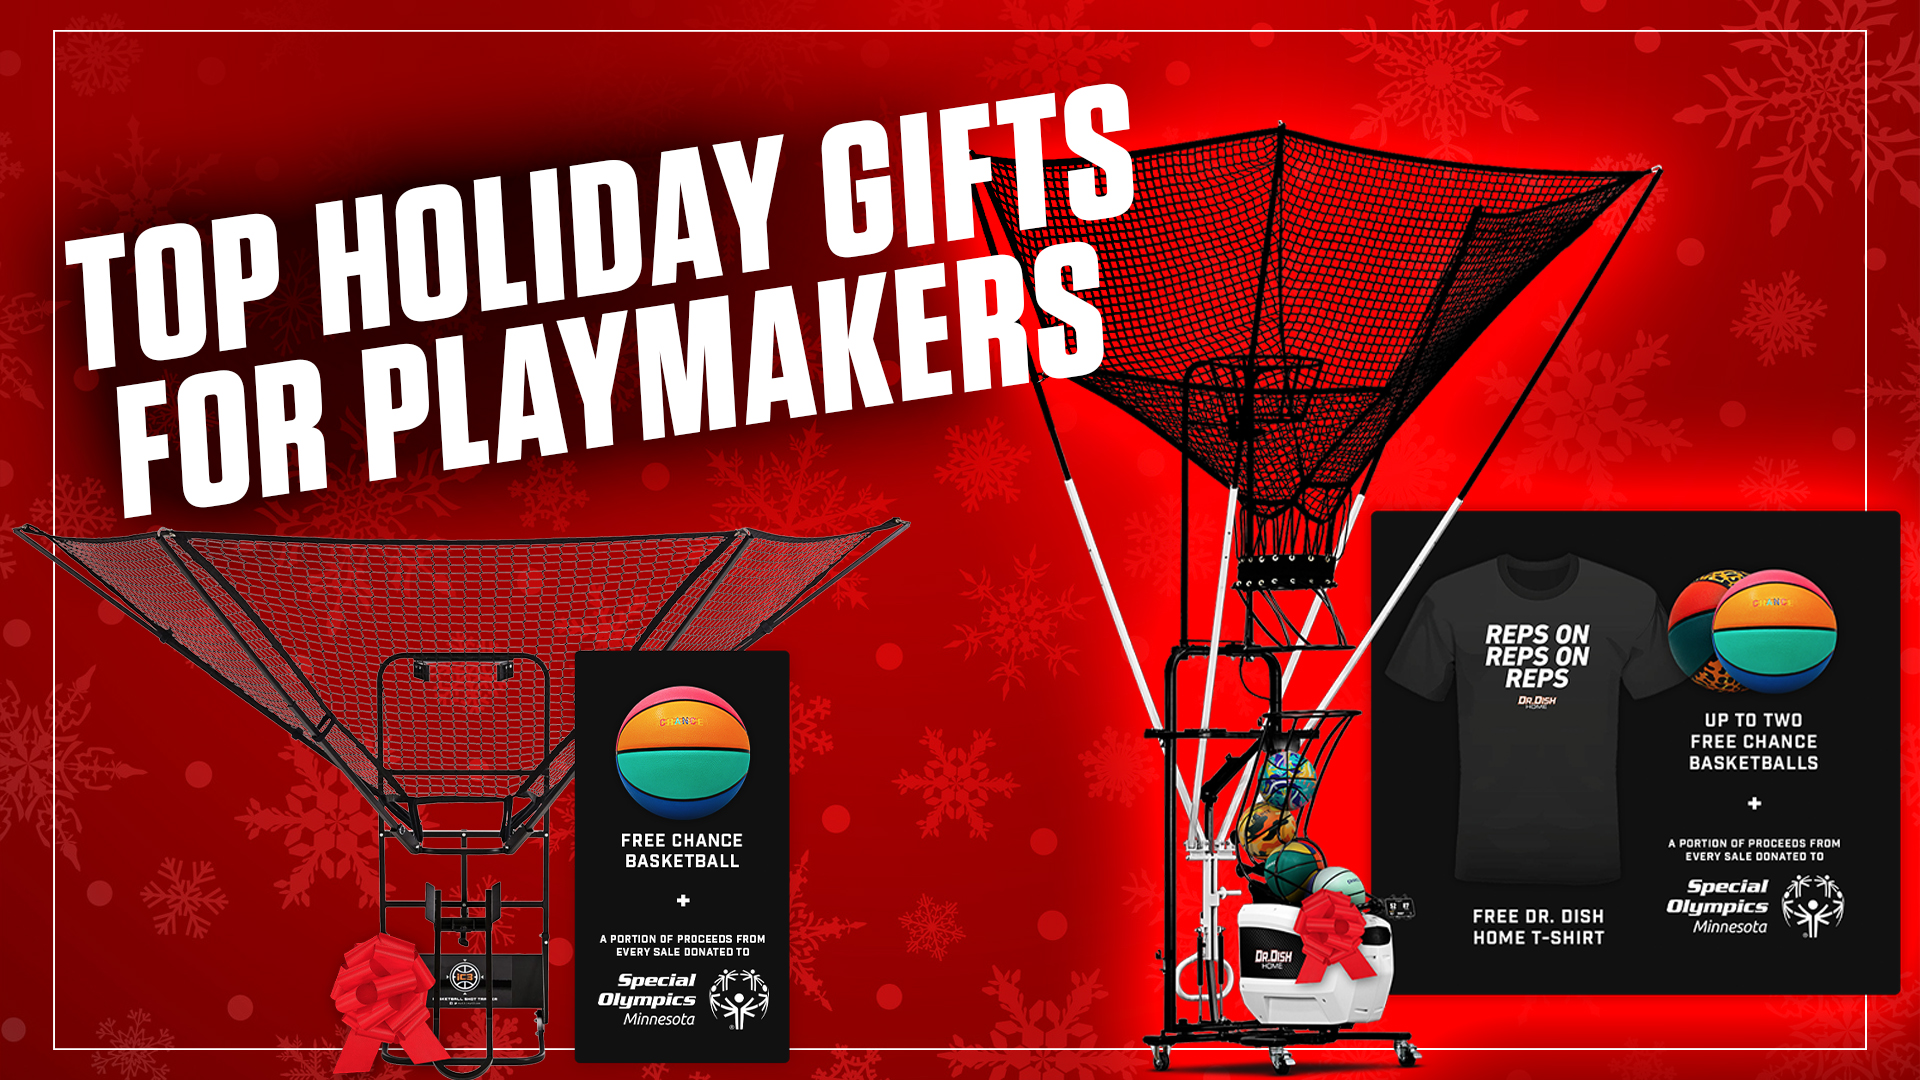 Top Holiday Gifts For Playmakers (2020)